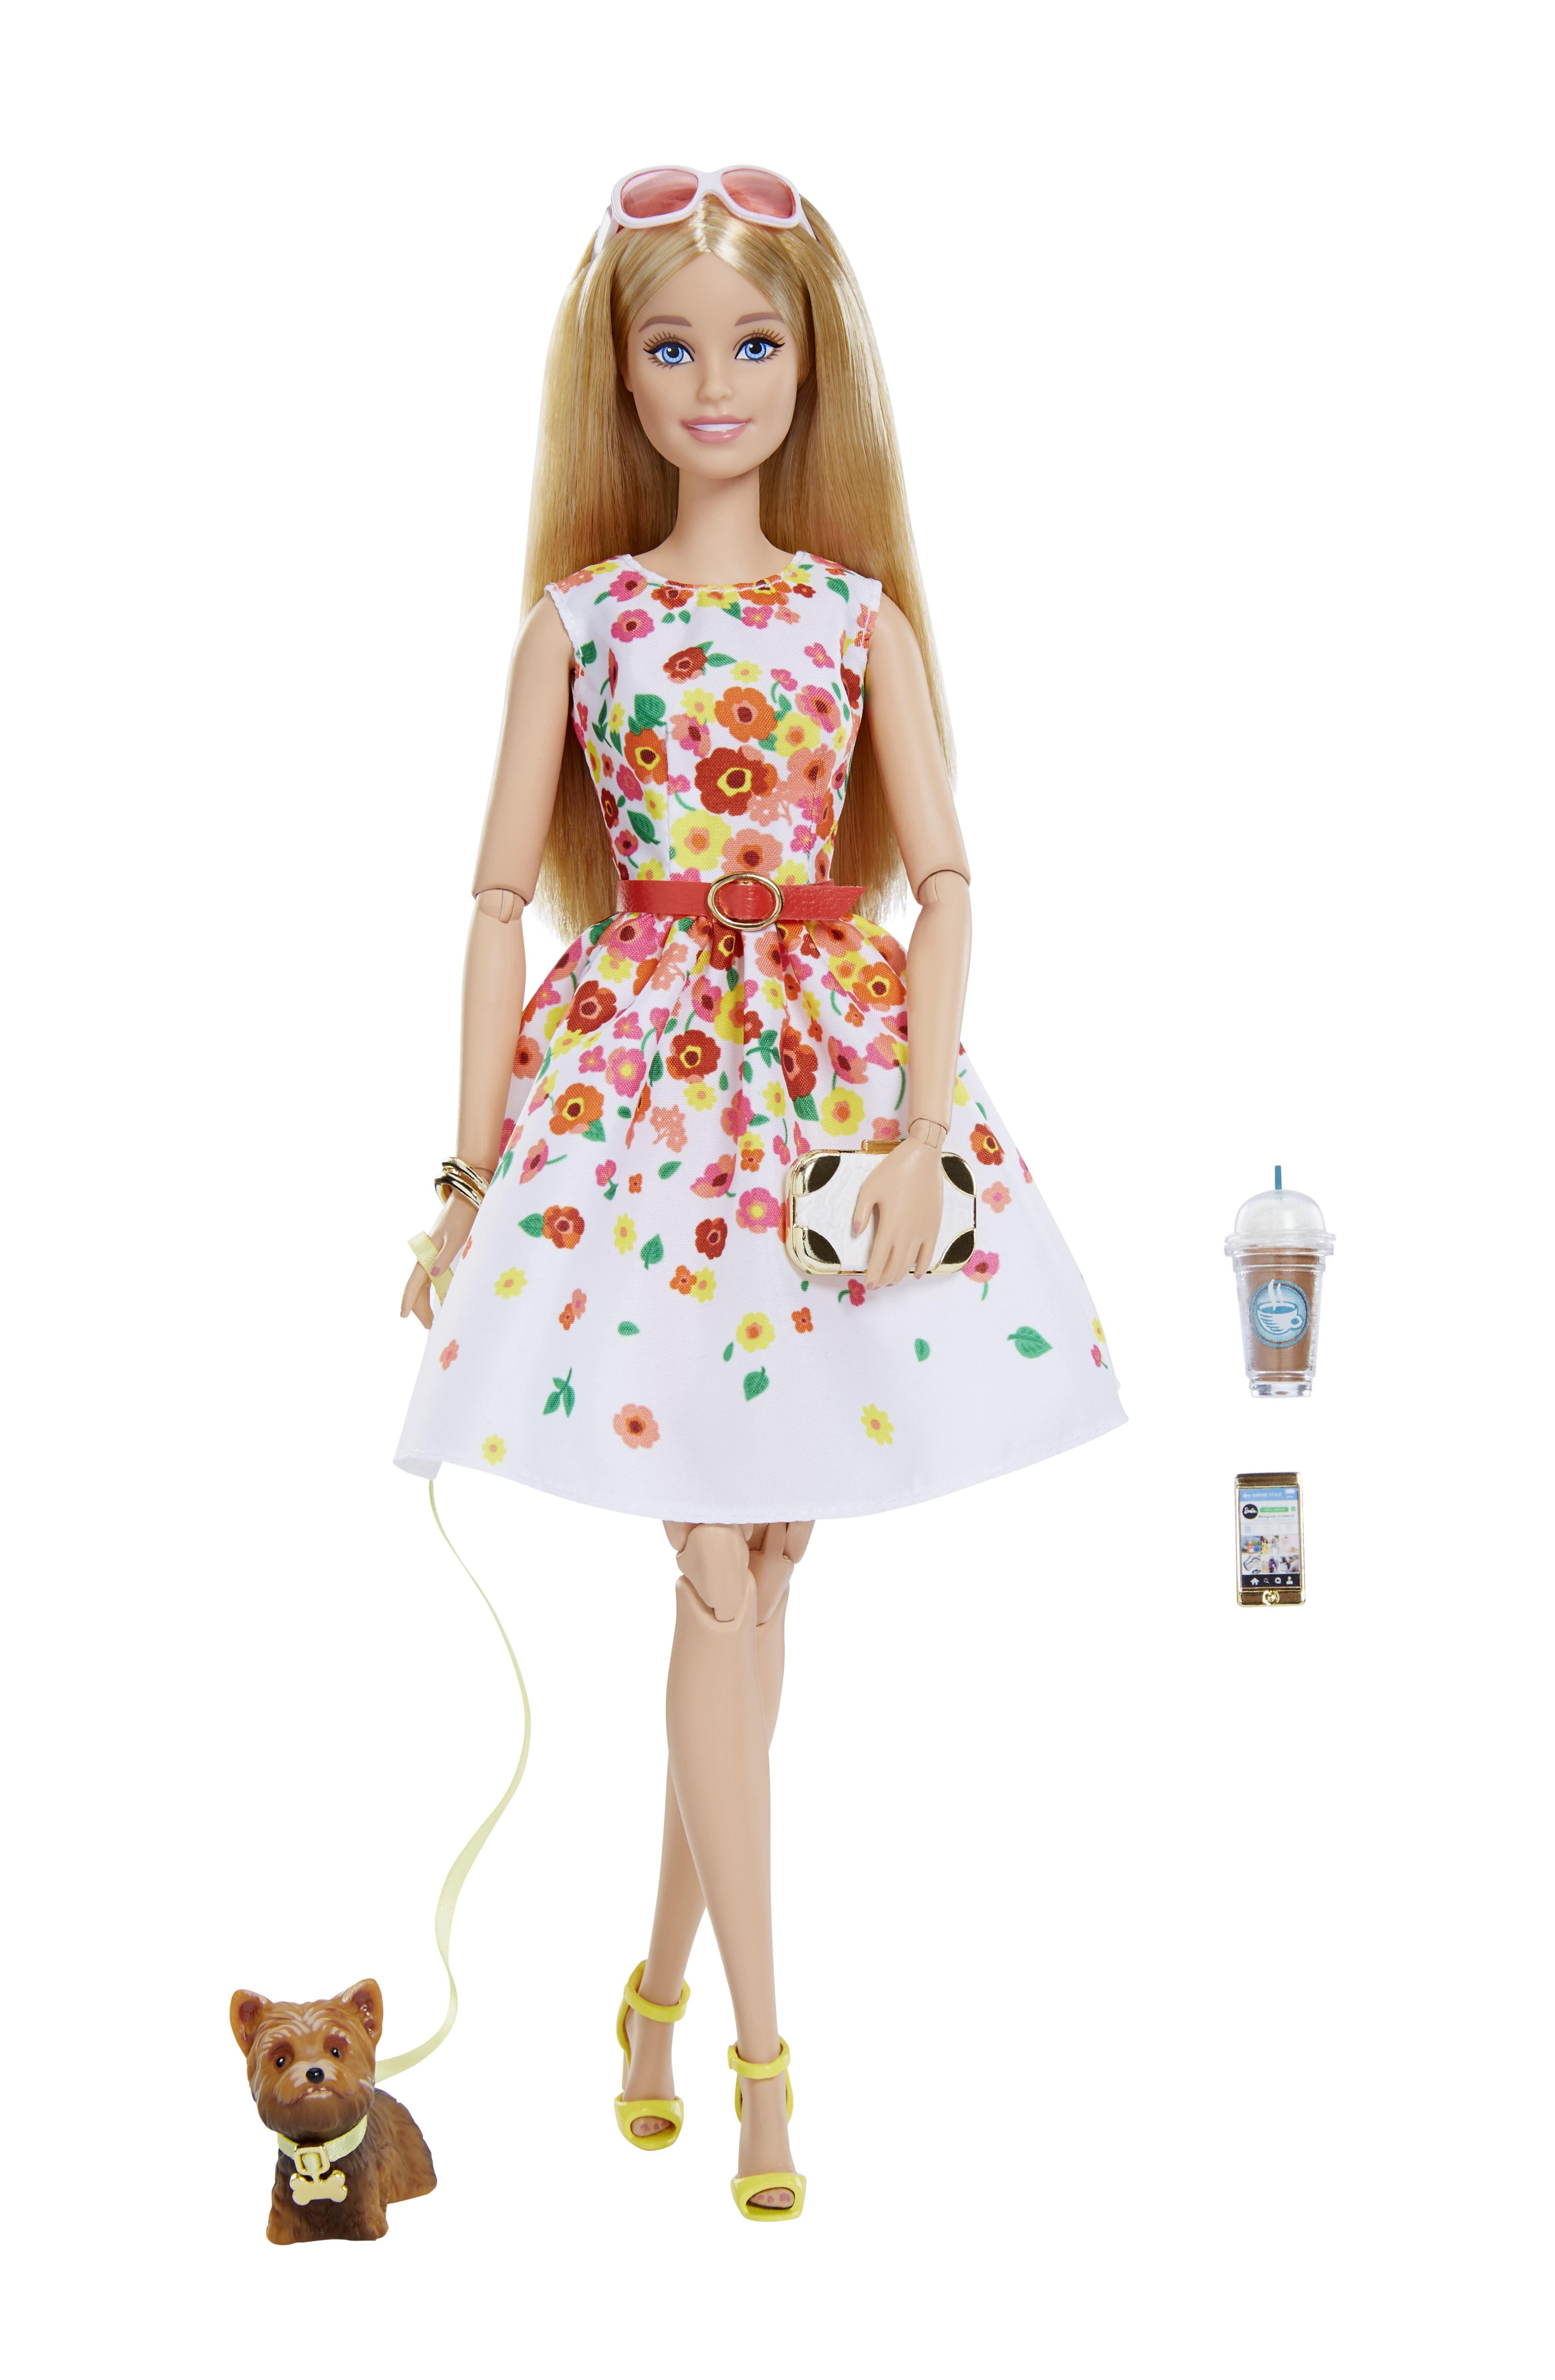 Amazon.com: Barbie Look Collector Barbie Doll - Park